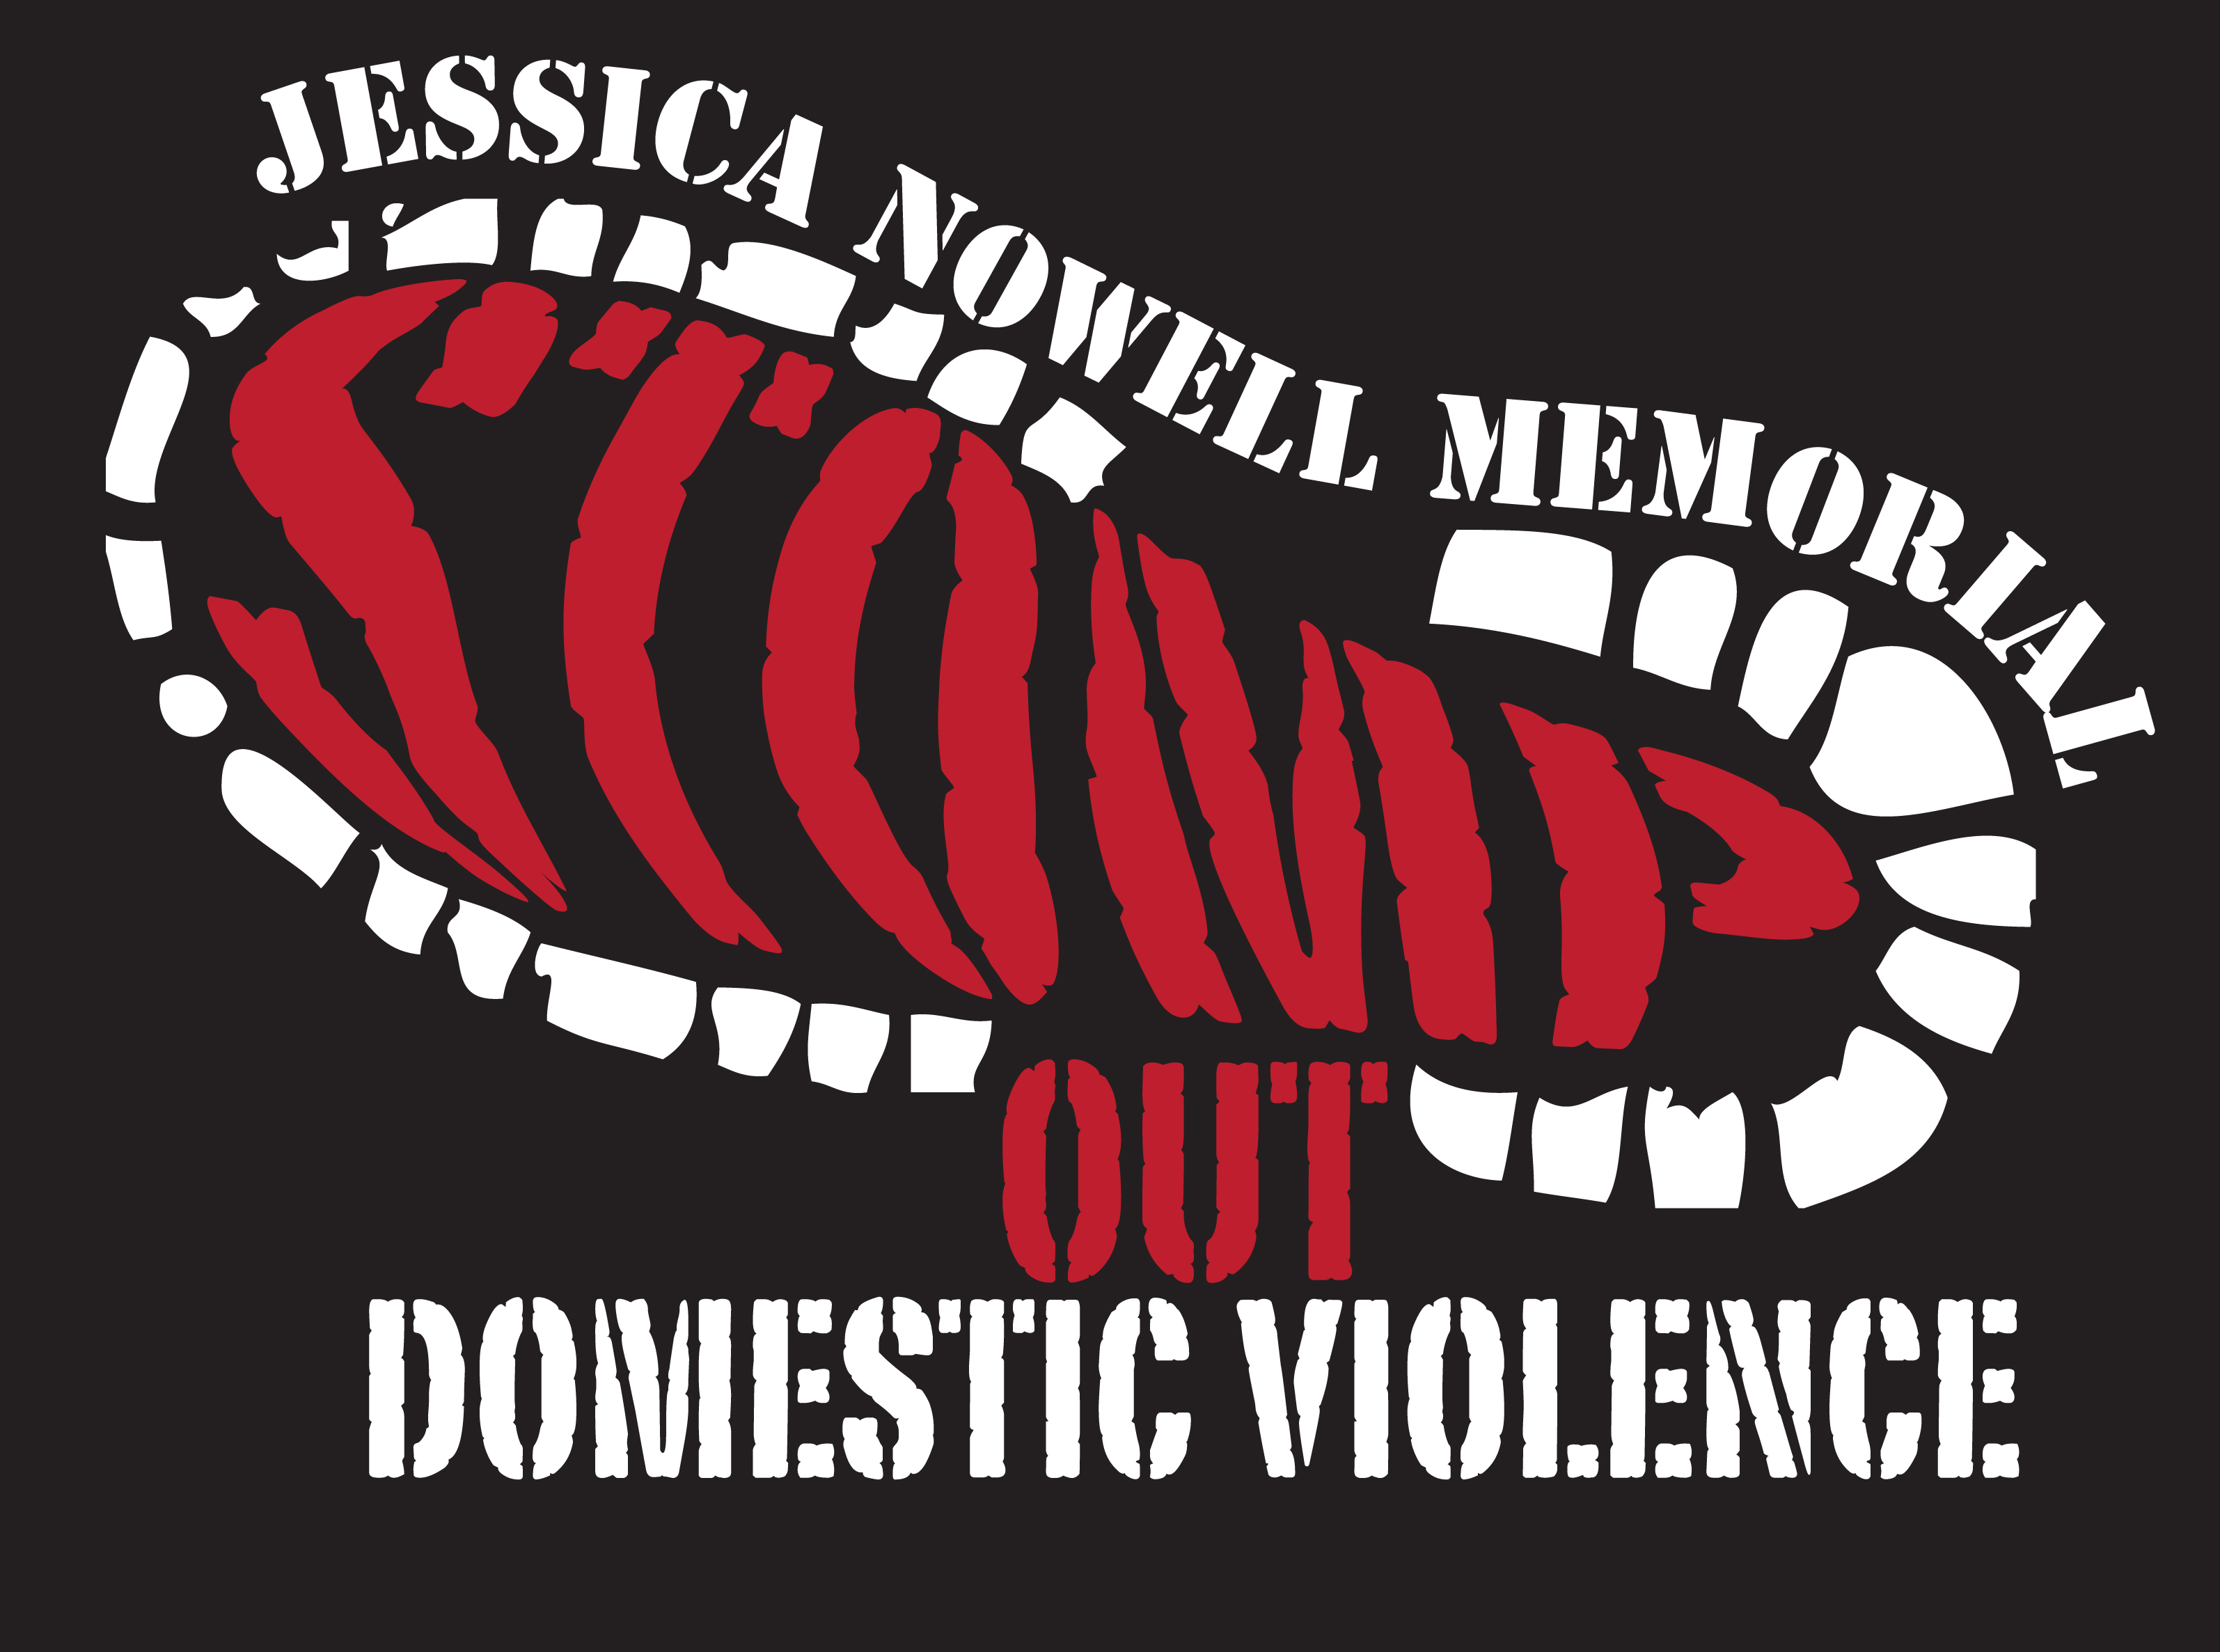 Jessica Nowell Memorial Stomp Out Domestic Violence